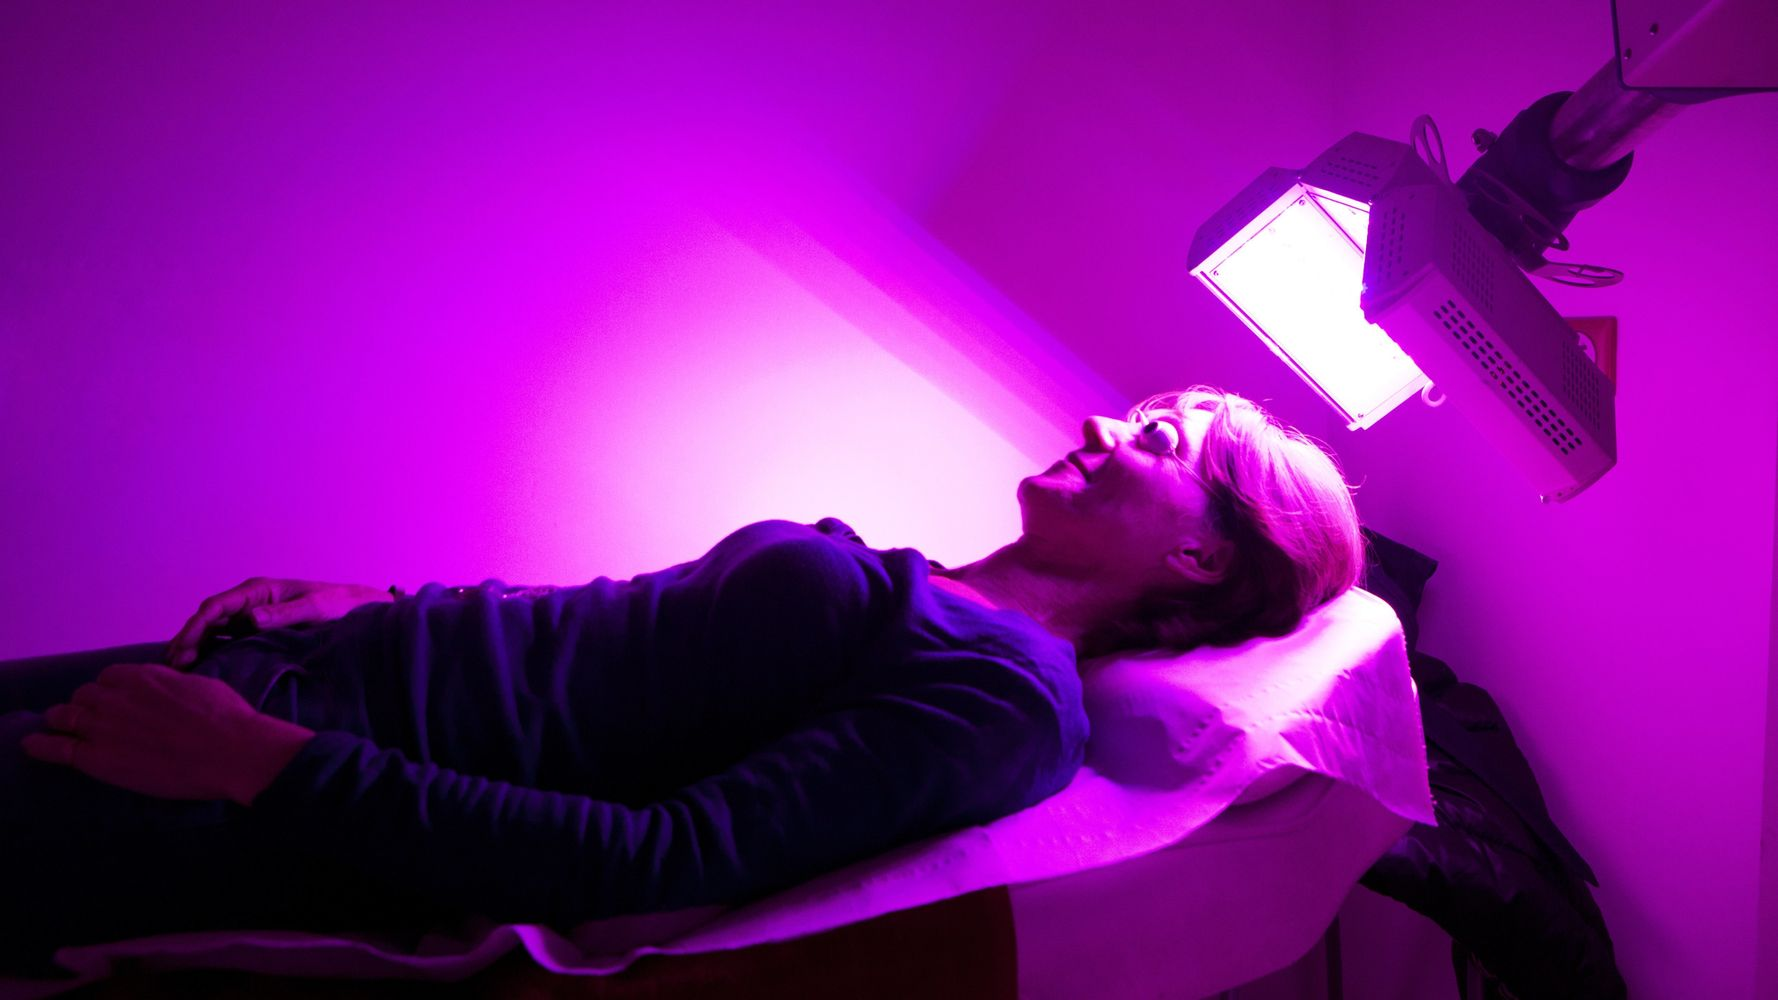 Dermatologists Explain How Light Therapy Works To Treat Acne